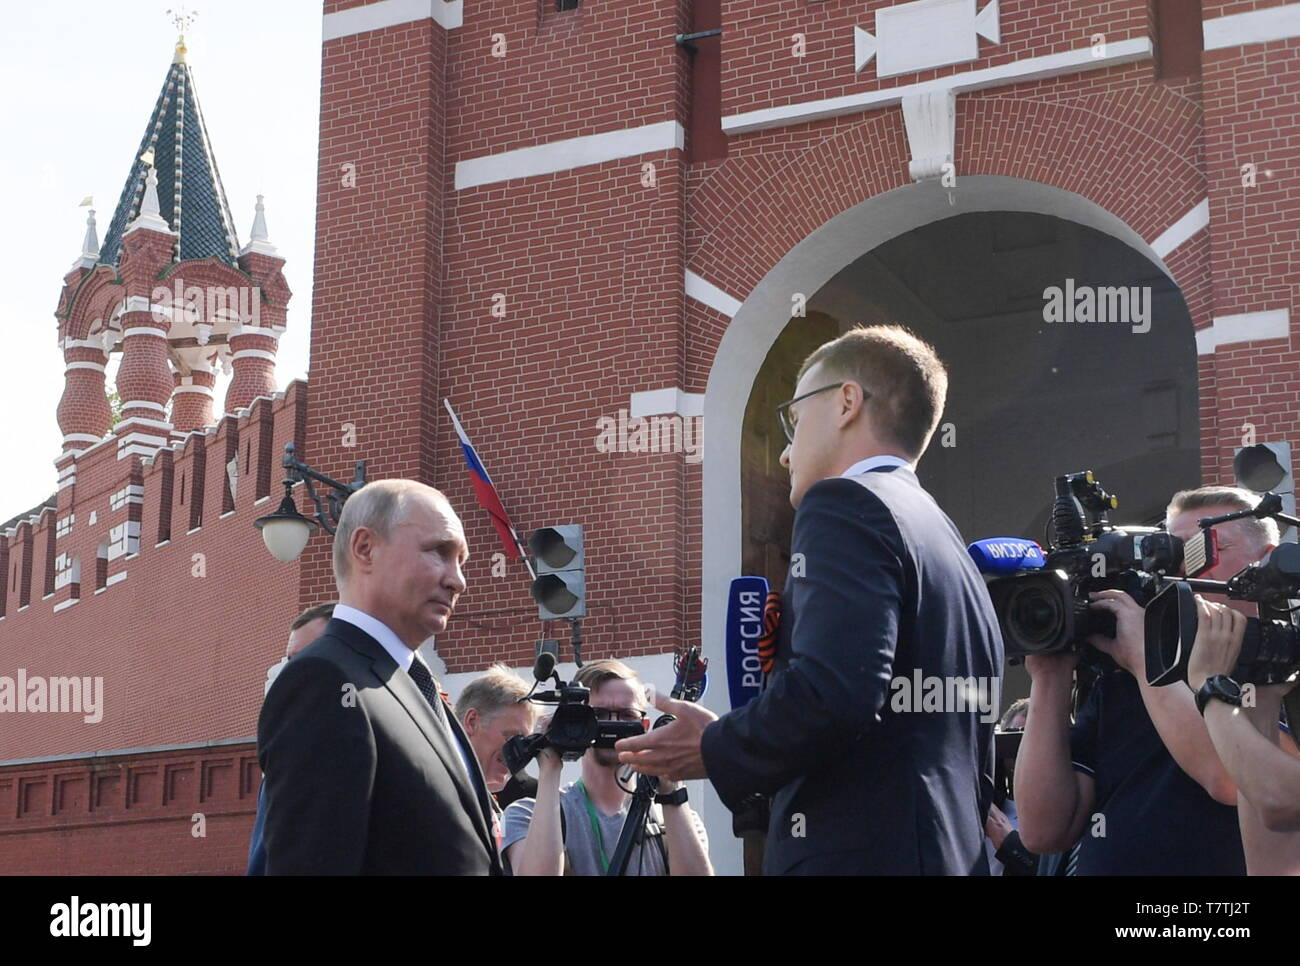 Moscow, Russia. 09th May, 2019. MOSCOW, RUSSIA - MAY 9, 2019: Russia's President Vladimir Putin (L) interviewed in Red Square after the Immortal Regiment march marking the 74th anniversary of the Victory over Nazi Germany in the Great Patriotic War, the Eastern Front of World War II. Alexei Druzhinin/Russian Presidential Press and Information Office/TASS Credit: ITAR-TASS News Agency/Alamy Live News - Stock Image